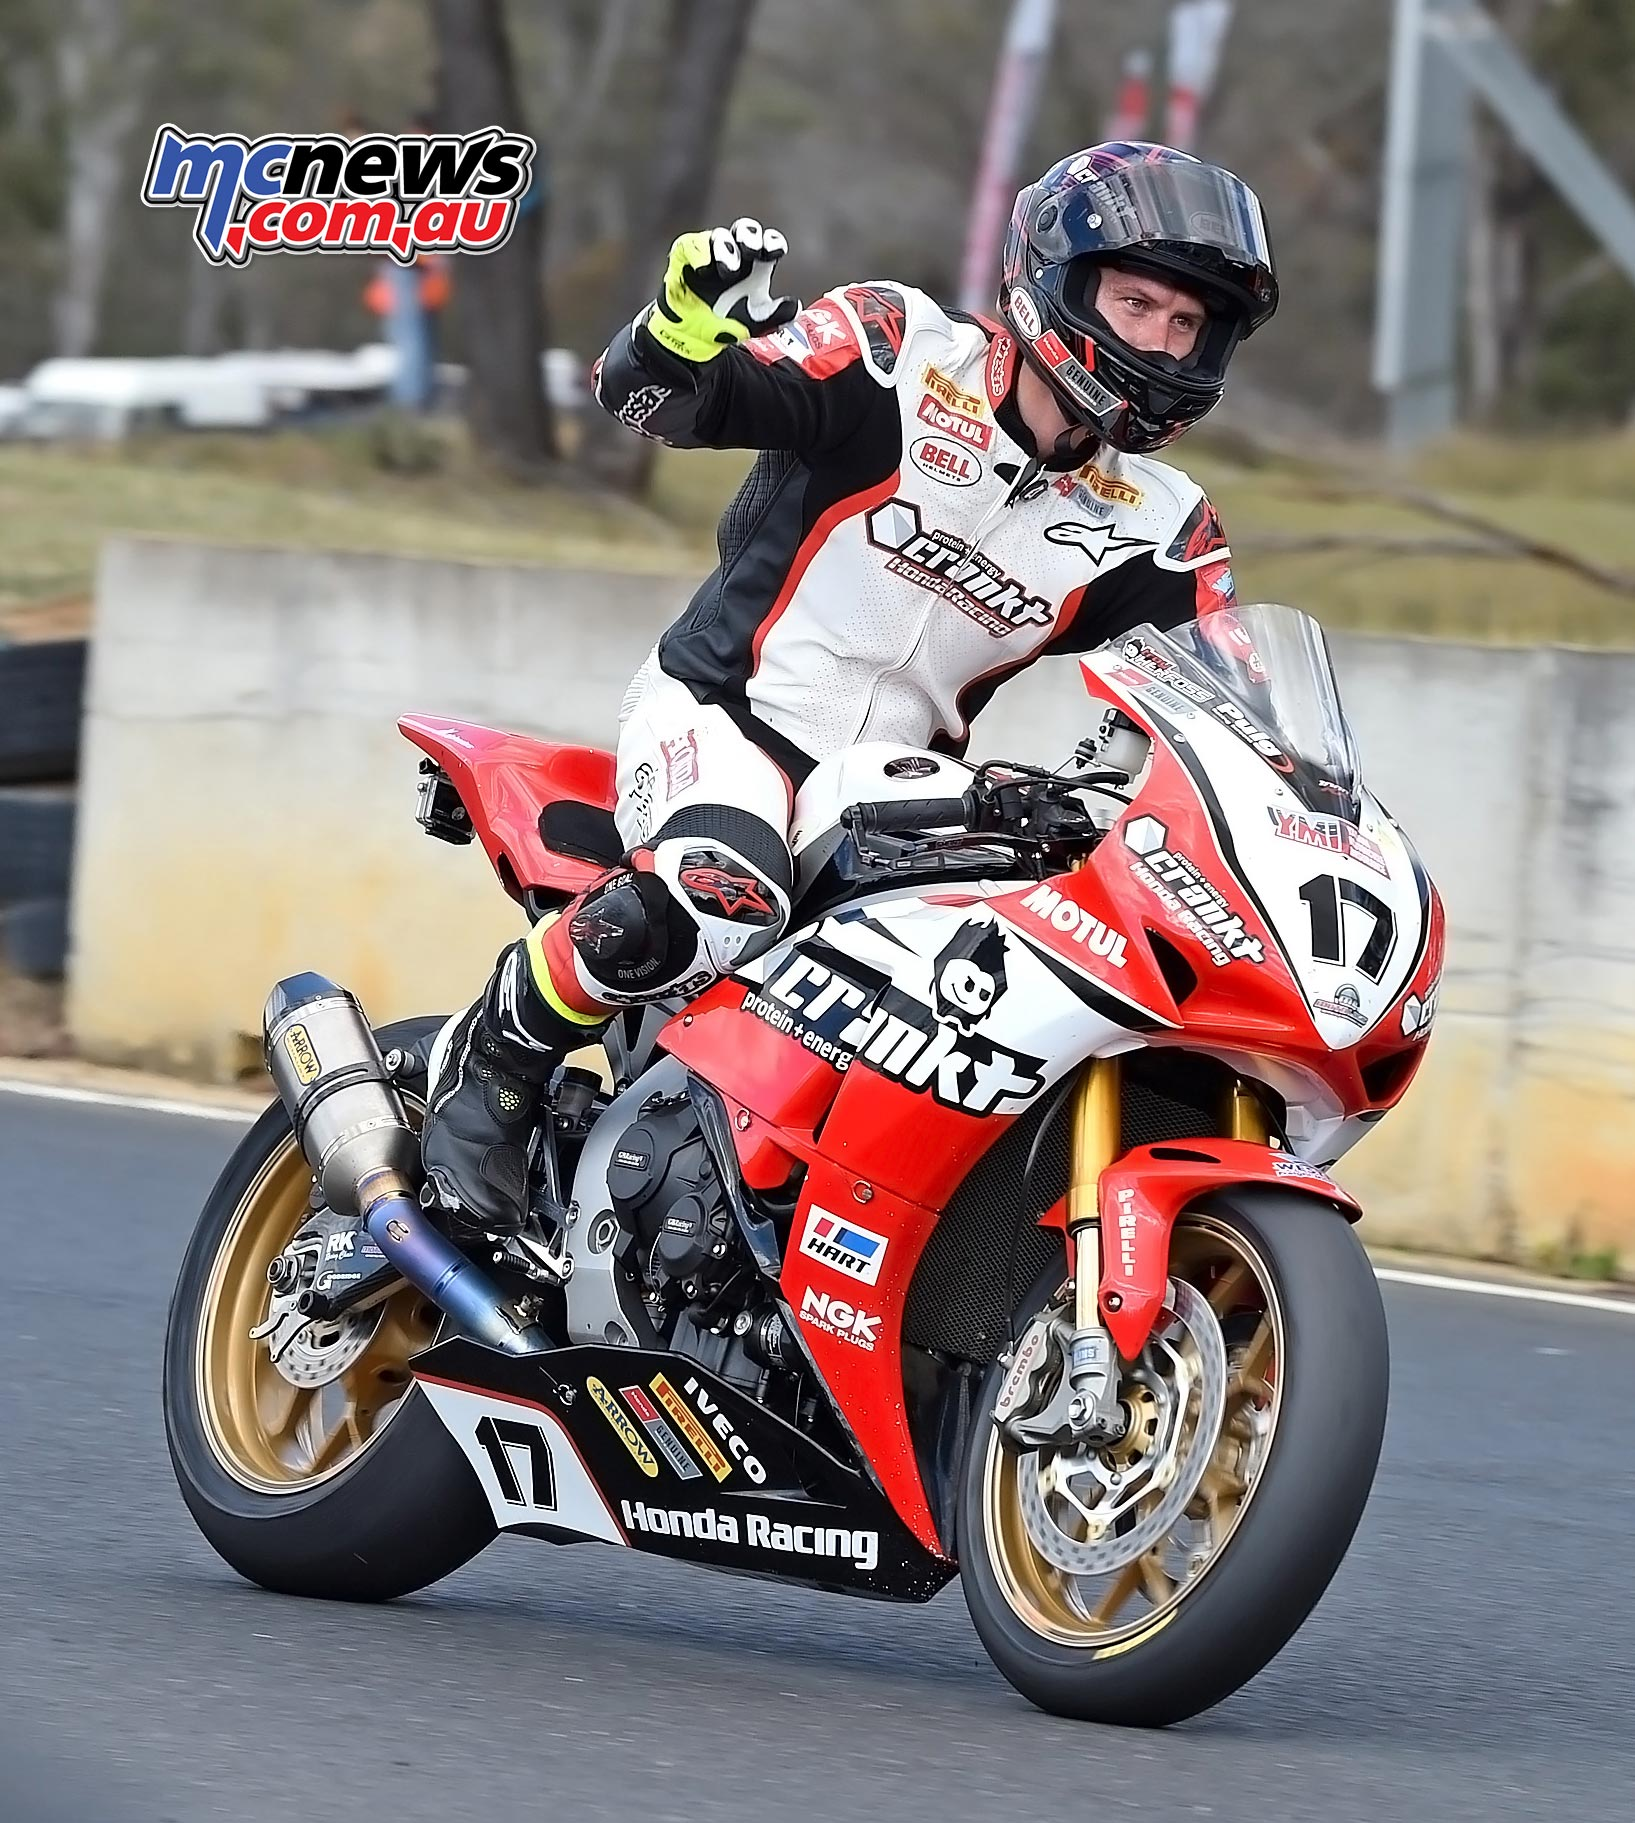 ASBK 2016 -Morgan Park - Troy Herfoss wins Superbike Race One - Image by Keith Muir